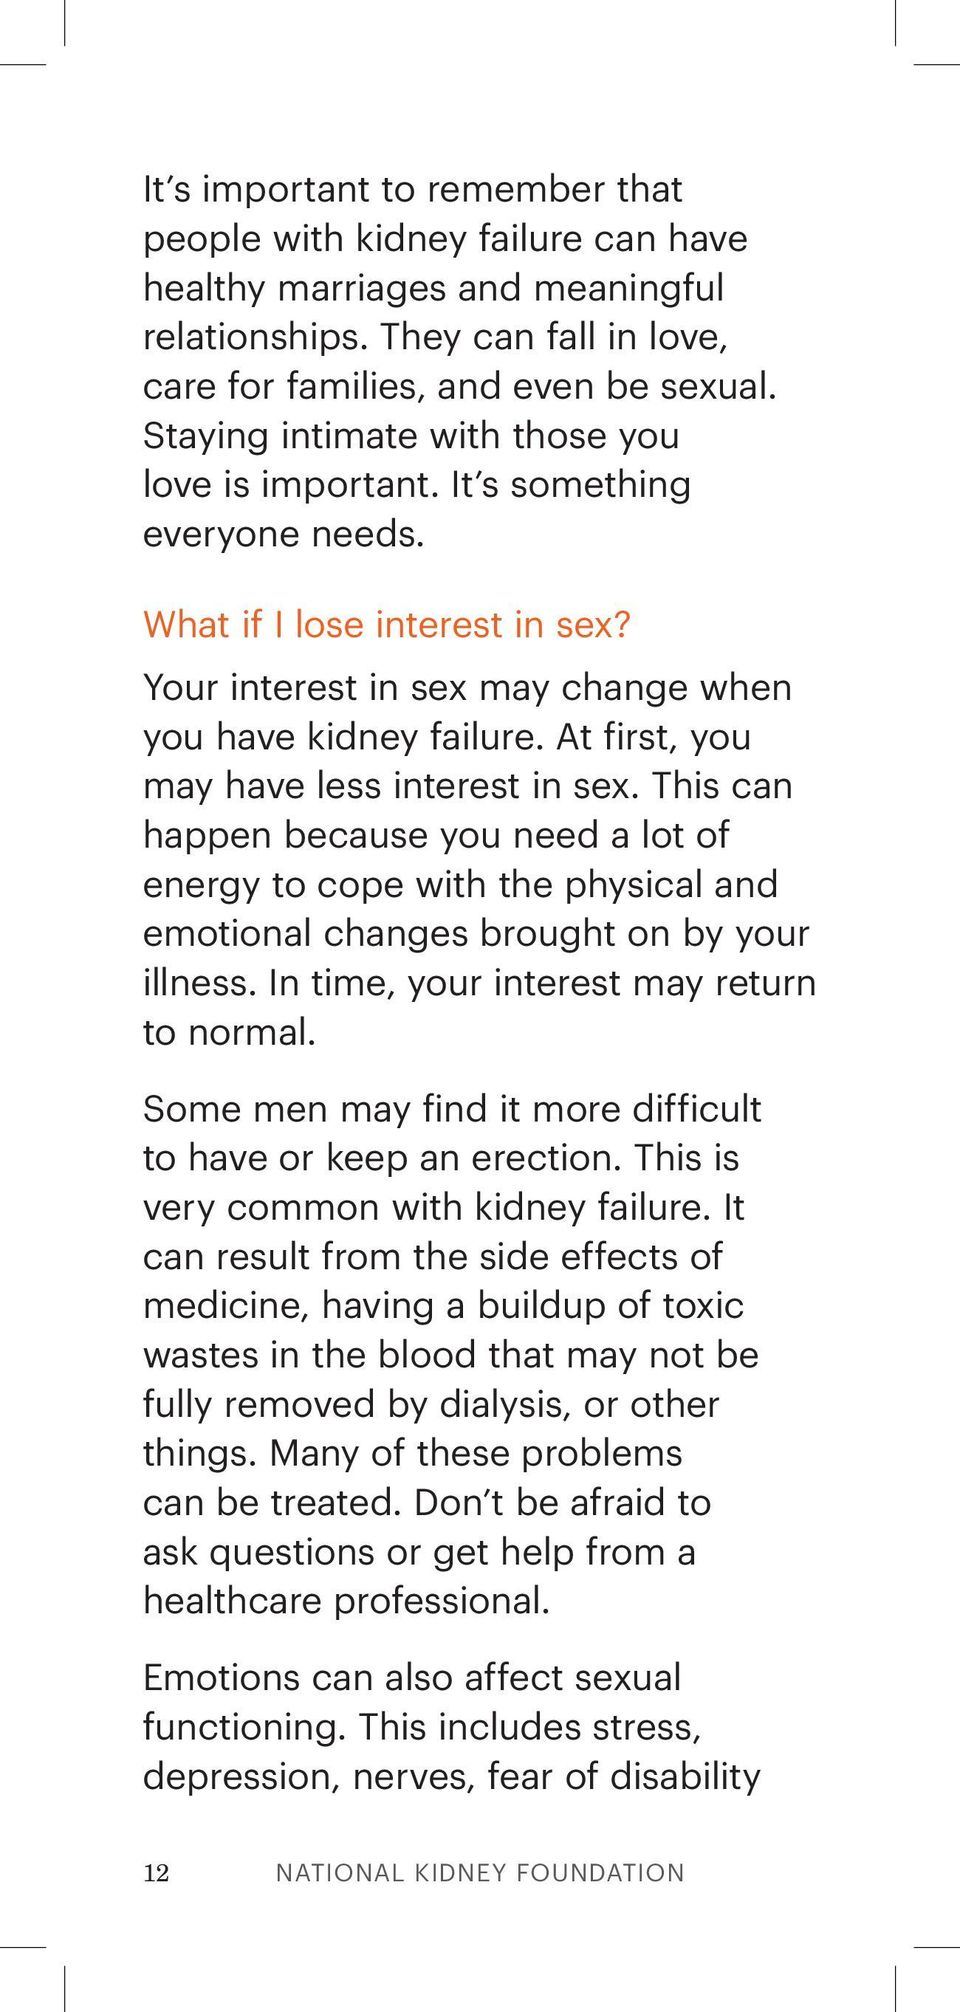 At first, you may have less interest in sex. This can happen because you need a lot of energy to cope with the physical and emotional changes brought on by your illness.